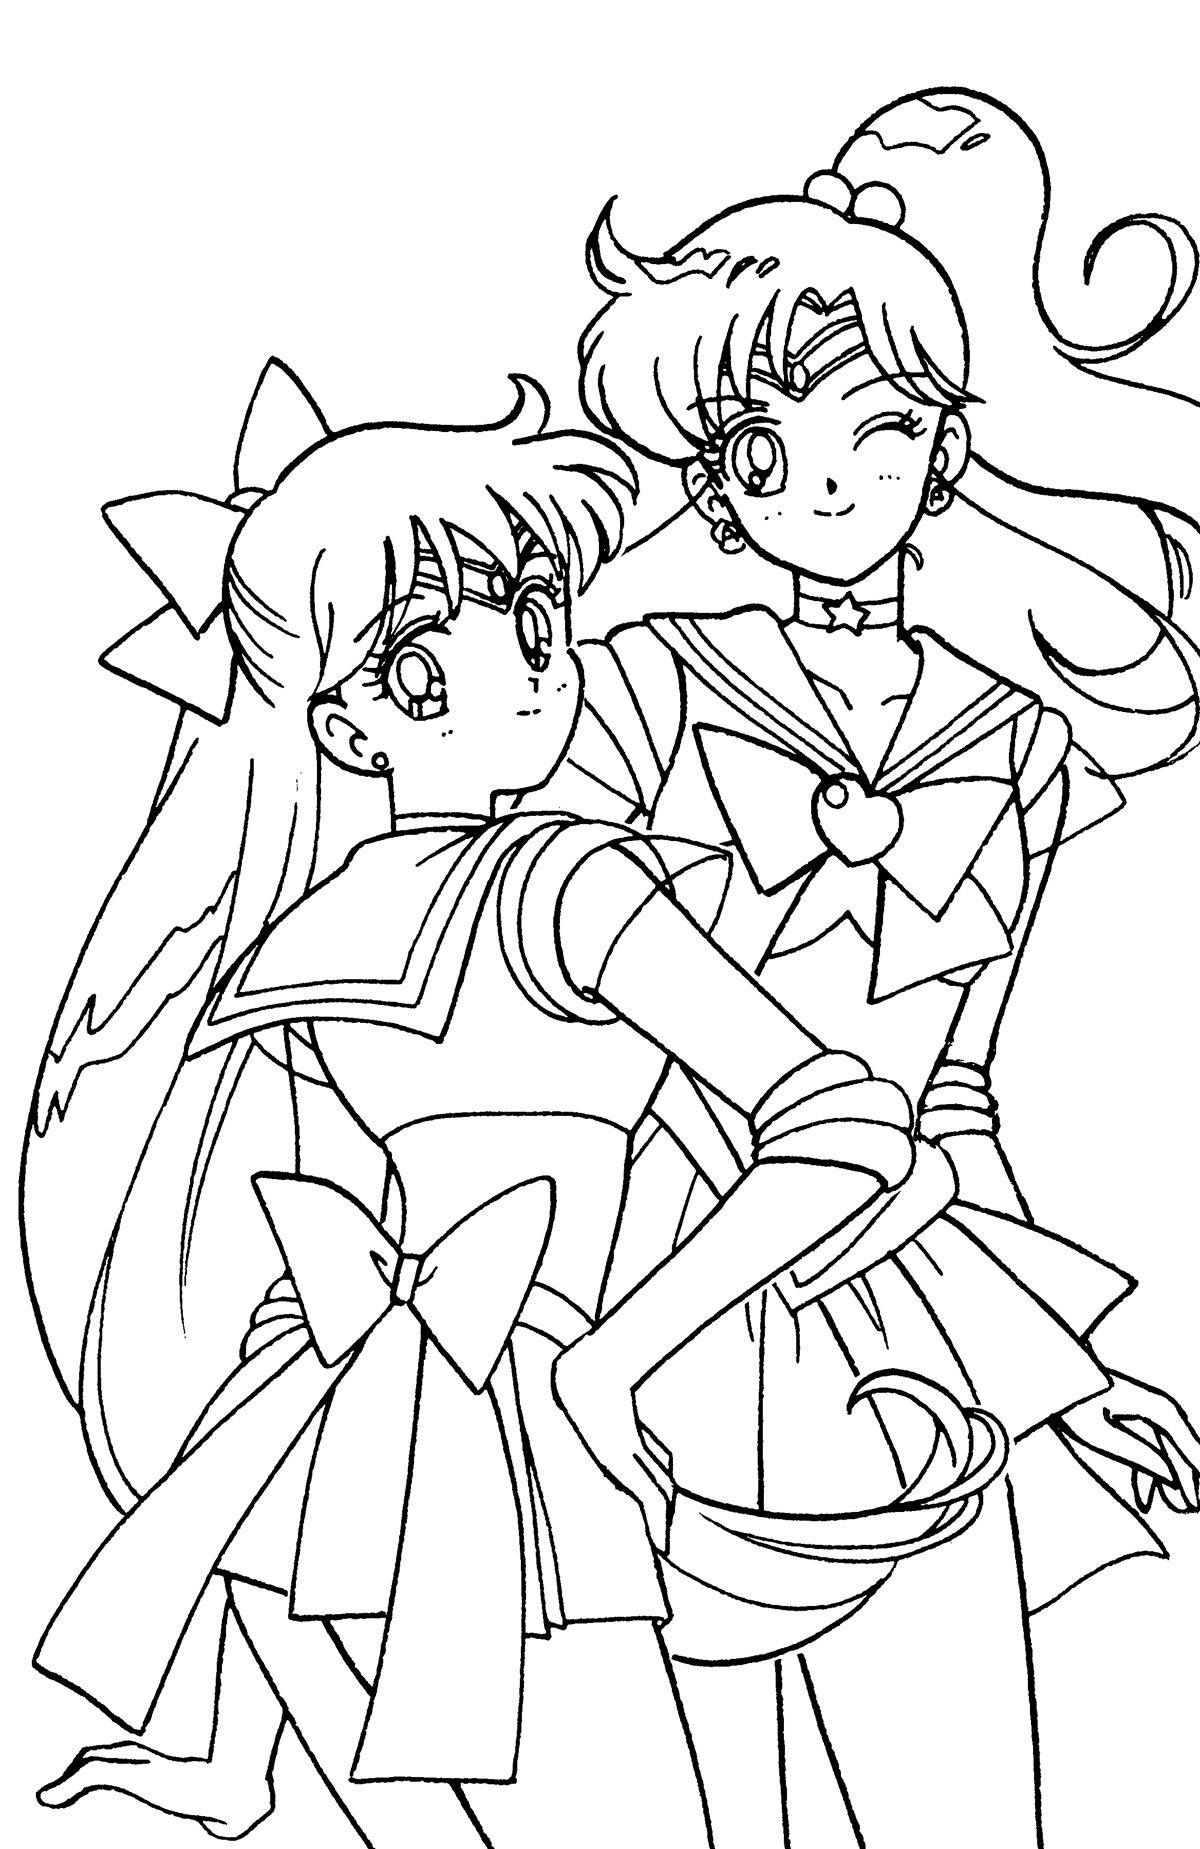 Sailor Venus Et Jupiter Sailor Moon Coloring Pages Sailor Moon Manga Sailor Moon